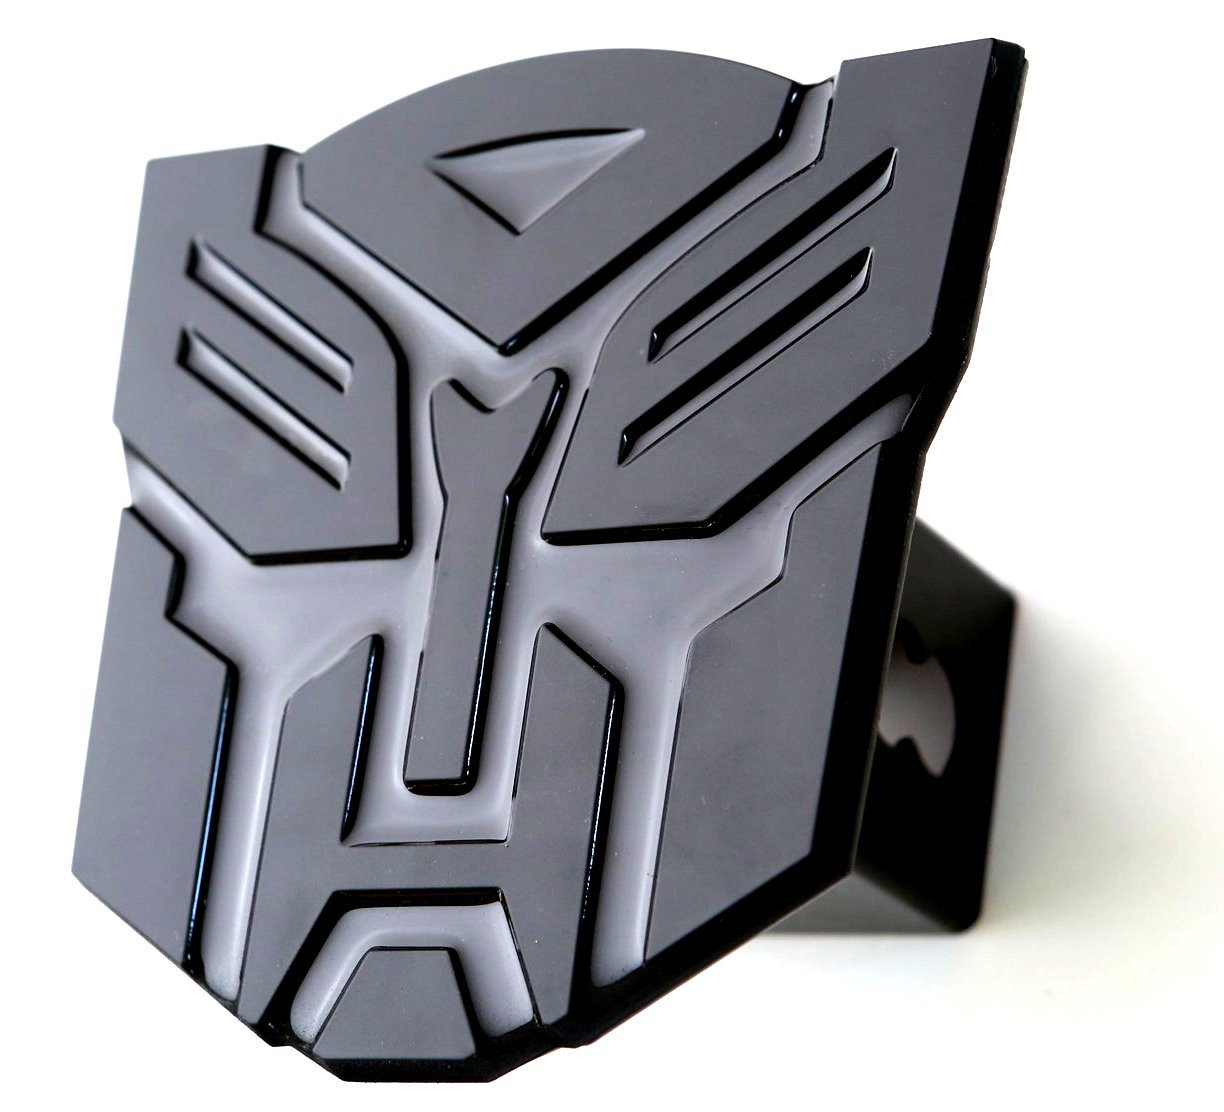 5'' Transformer Autobot Black 3d Logo Trailer Metal Hitch Cover Fits 2' Receivers bparts HBL2354